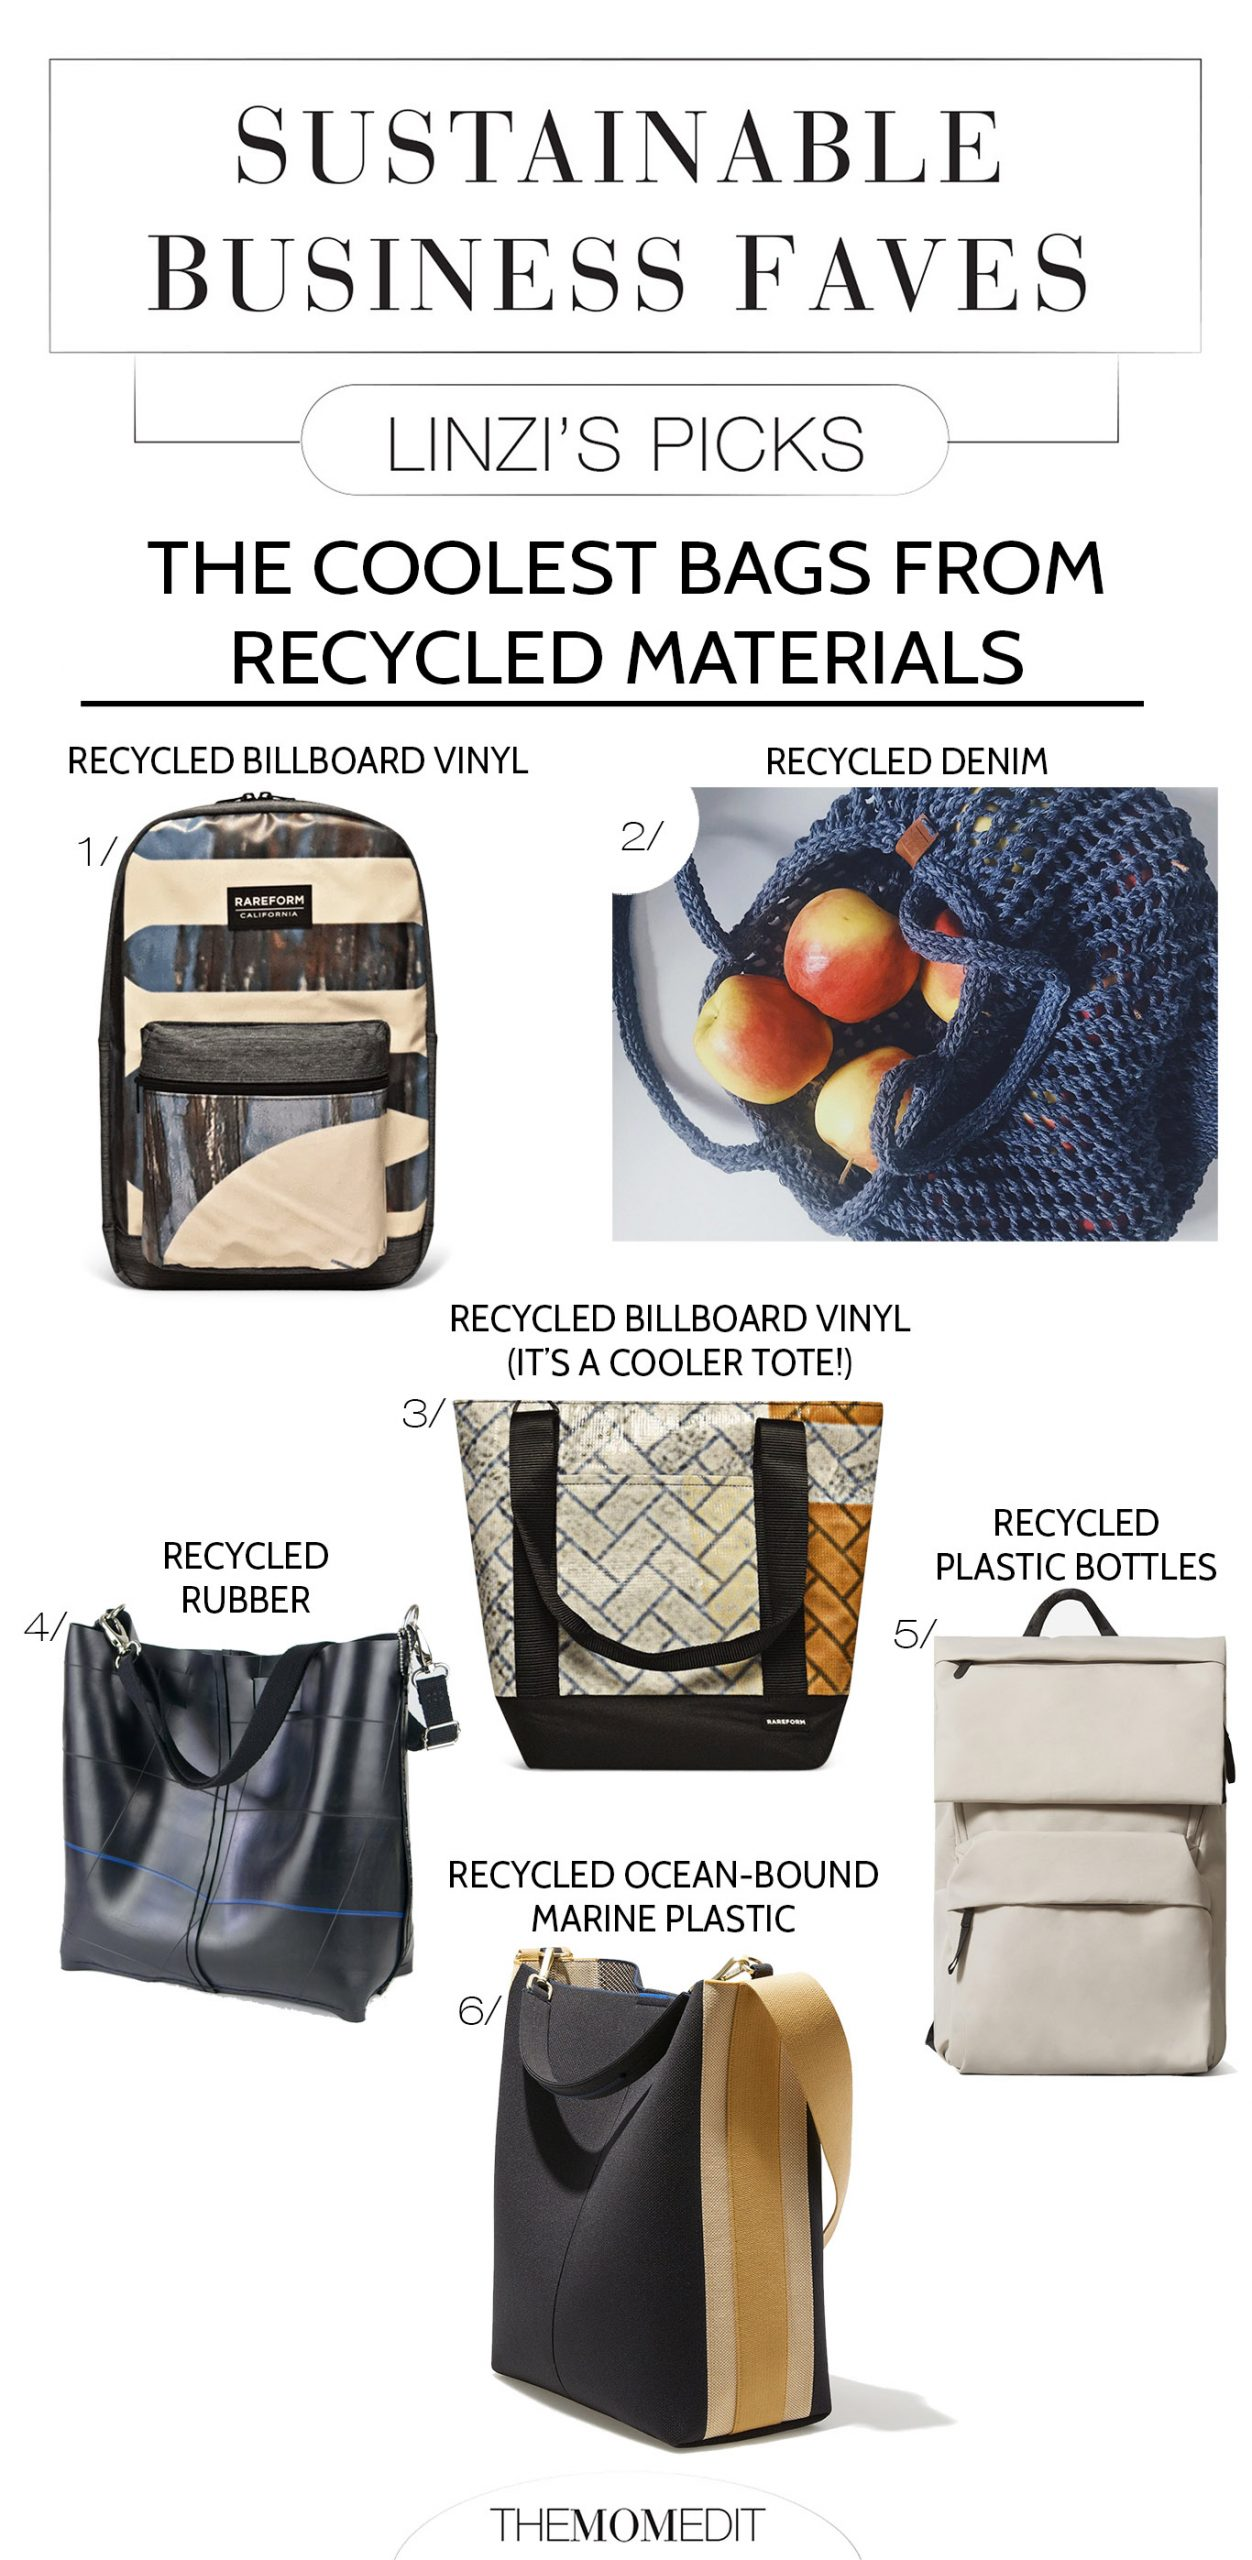 From EILEEN FISHER to Levi's 501 & NAADAM, our fave brands bring cute sustainable products we love -- the sneakers & bags are good, too.